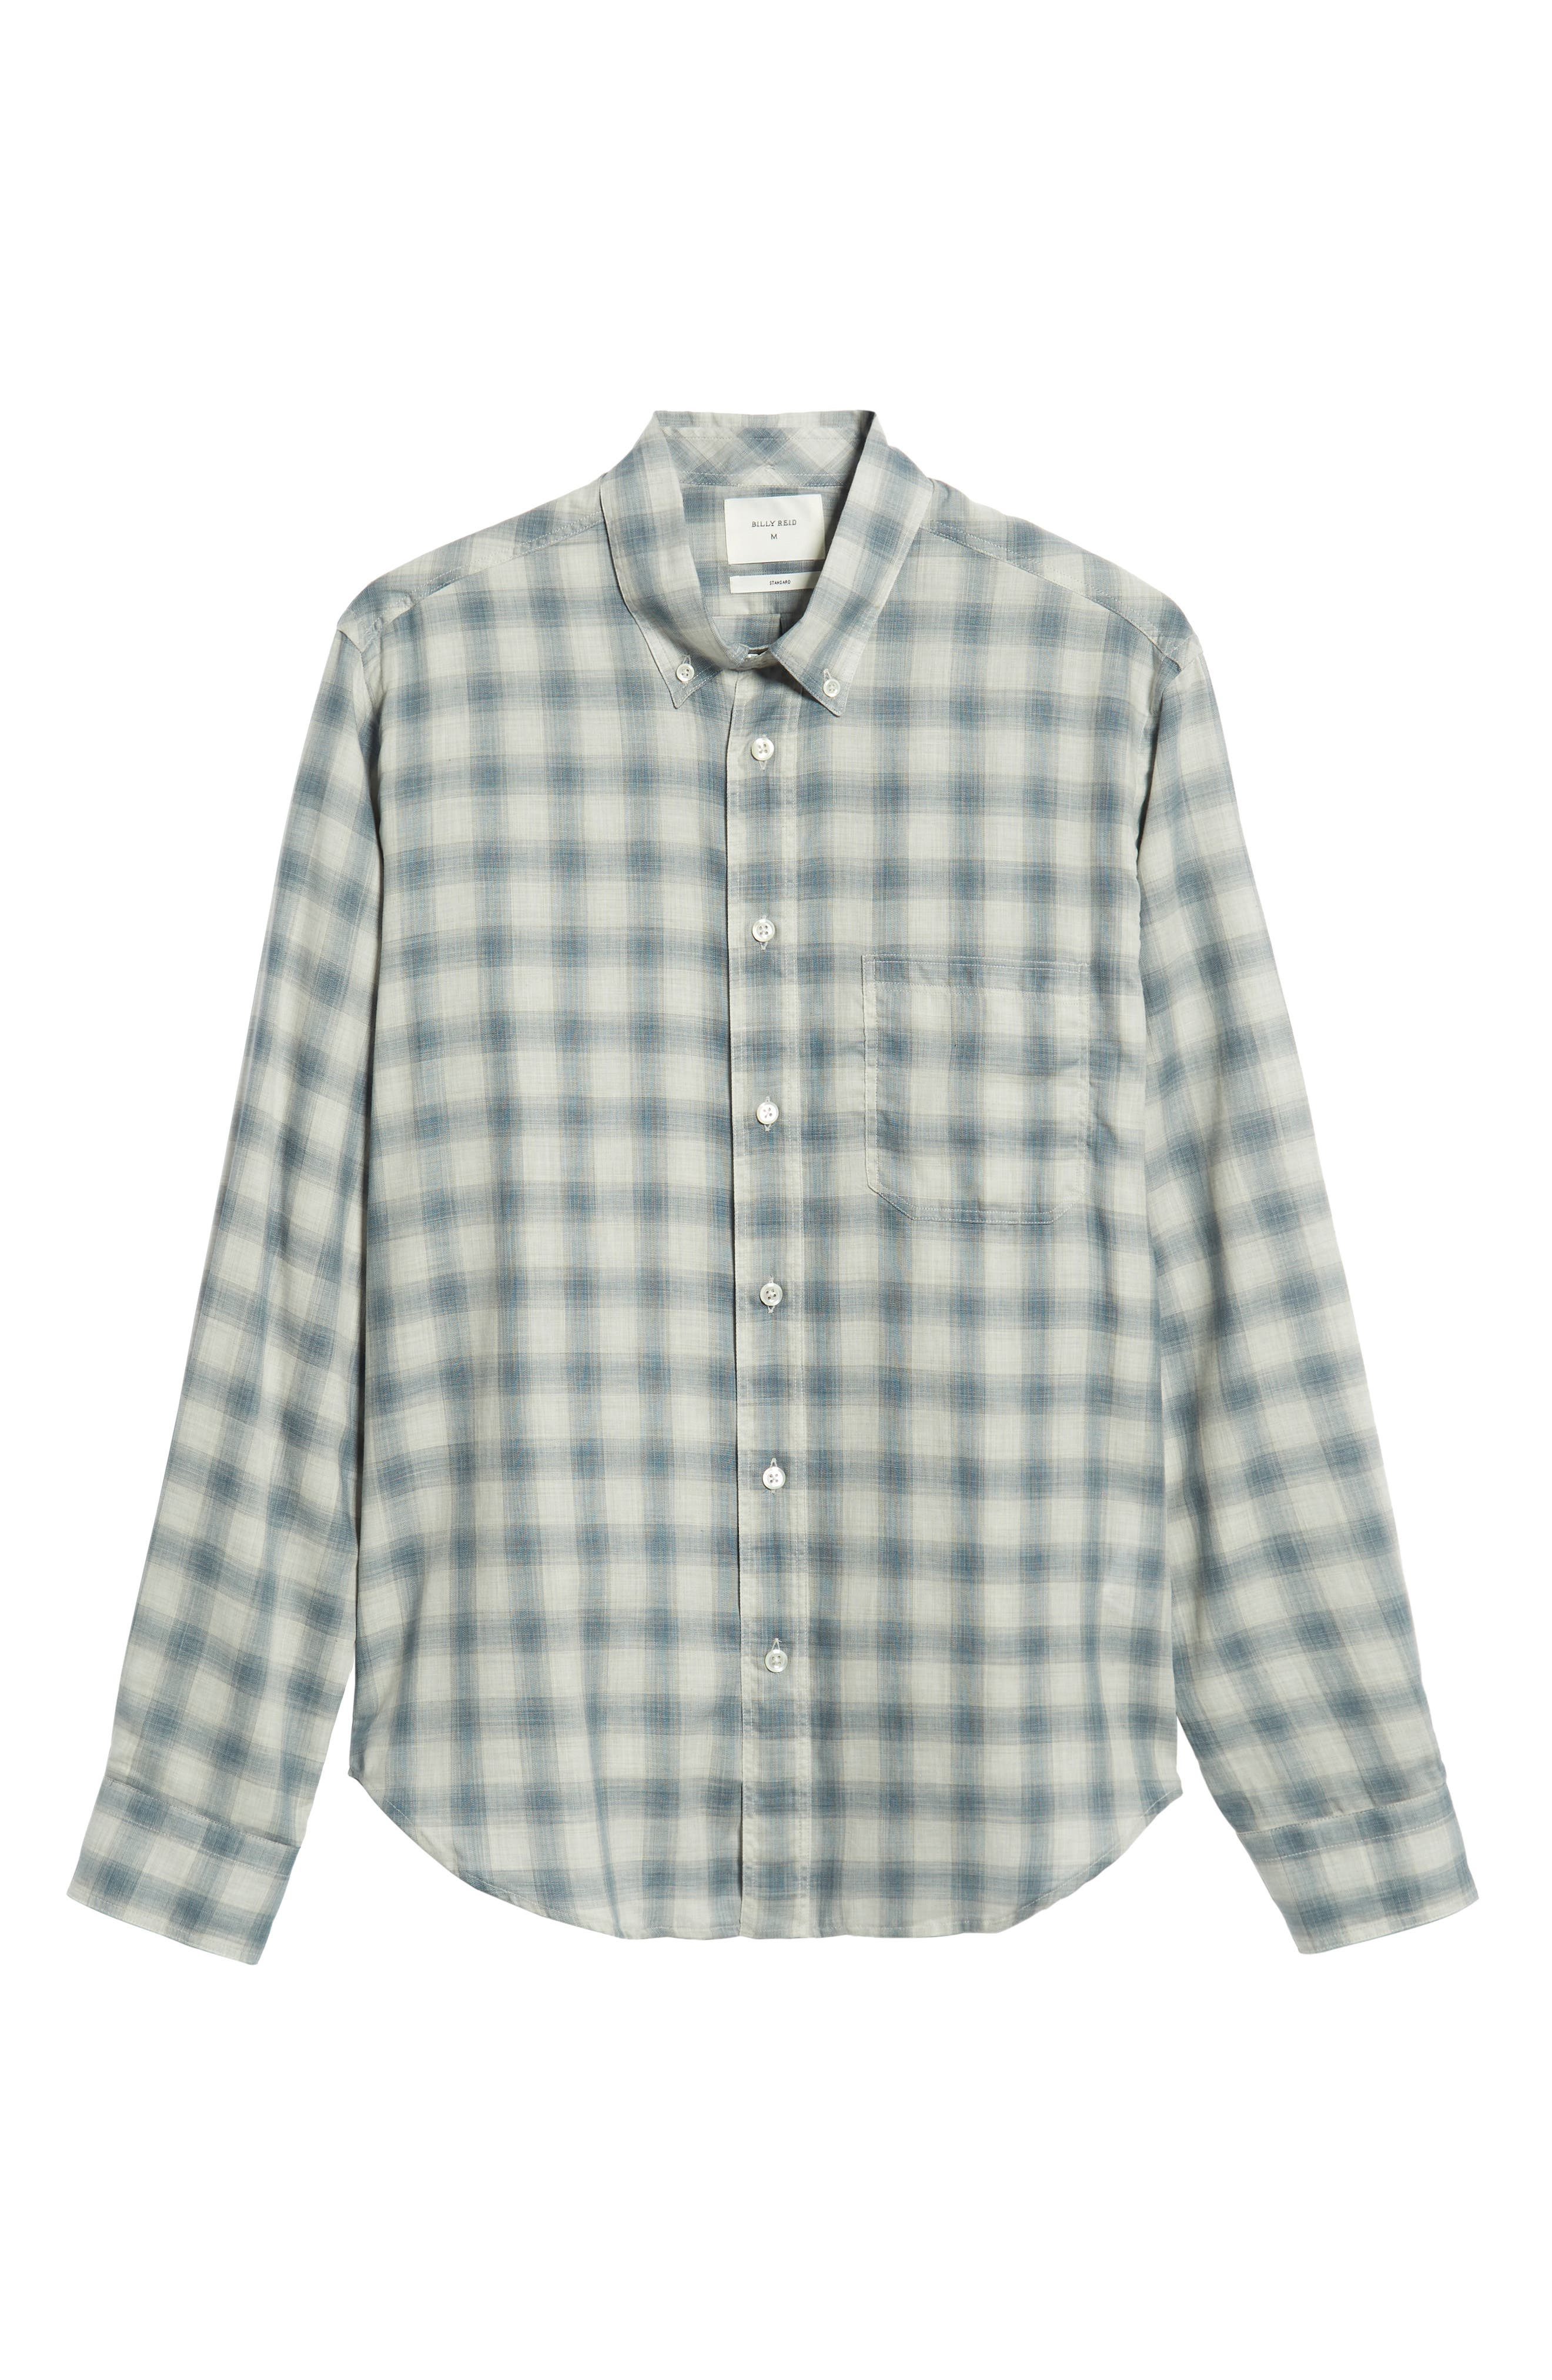 Tuscumbia Regular Fit Pattern Sport Shirt,                             Alternate thumbnail 5, color,                             BLUE/ GREY